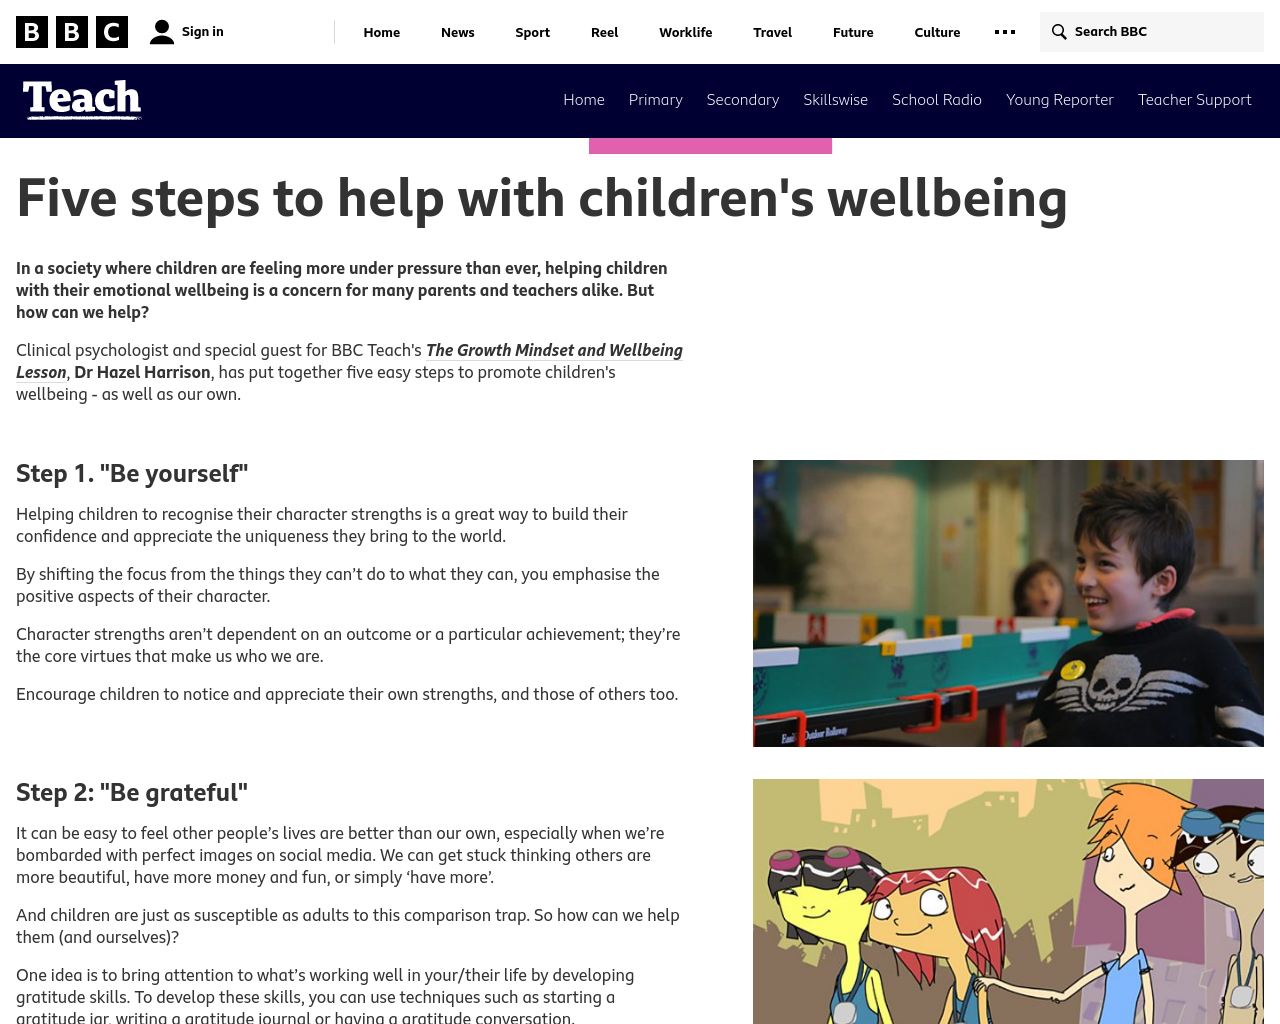 5 Steps for children's wellbeing